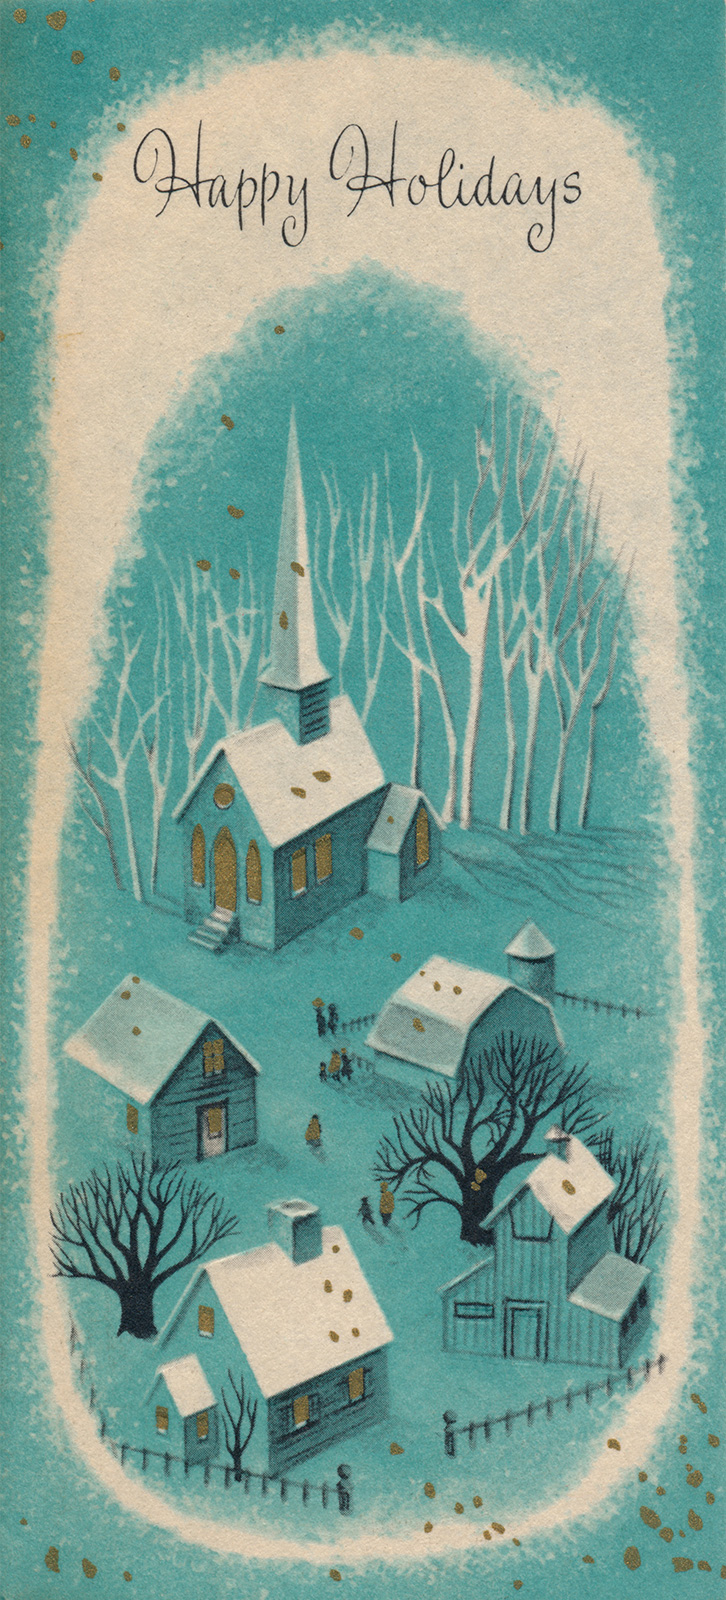 """A turquoise card features a small village with snow capped roofs, and white, leafless trees. Above it reads """"Happy Holidays"""""""